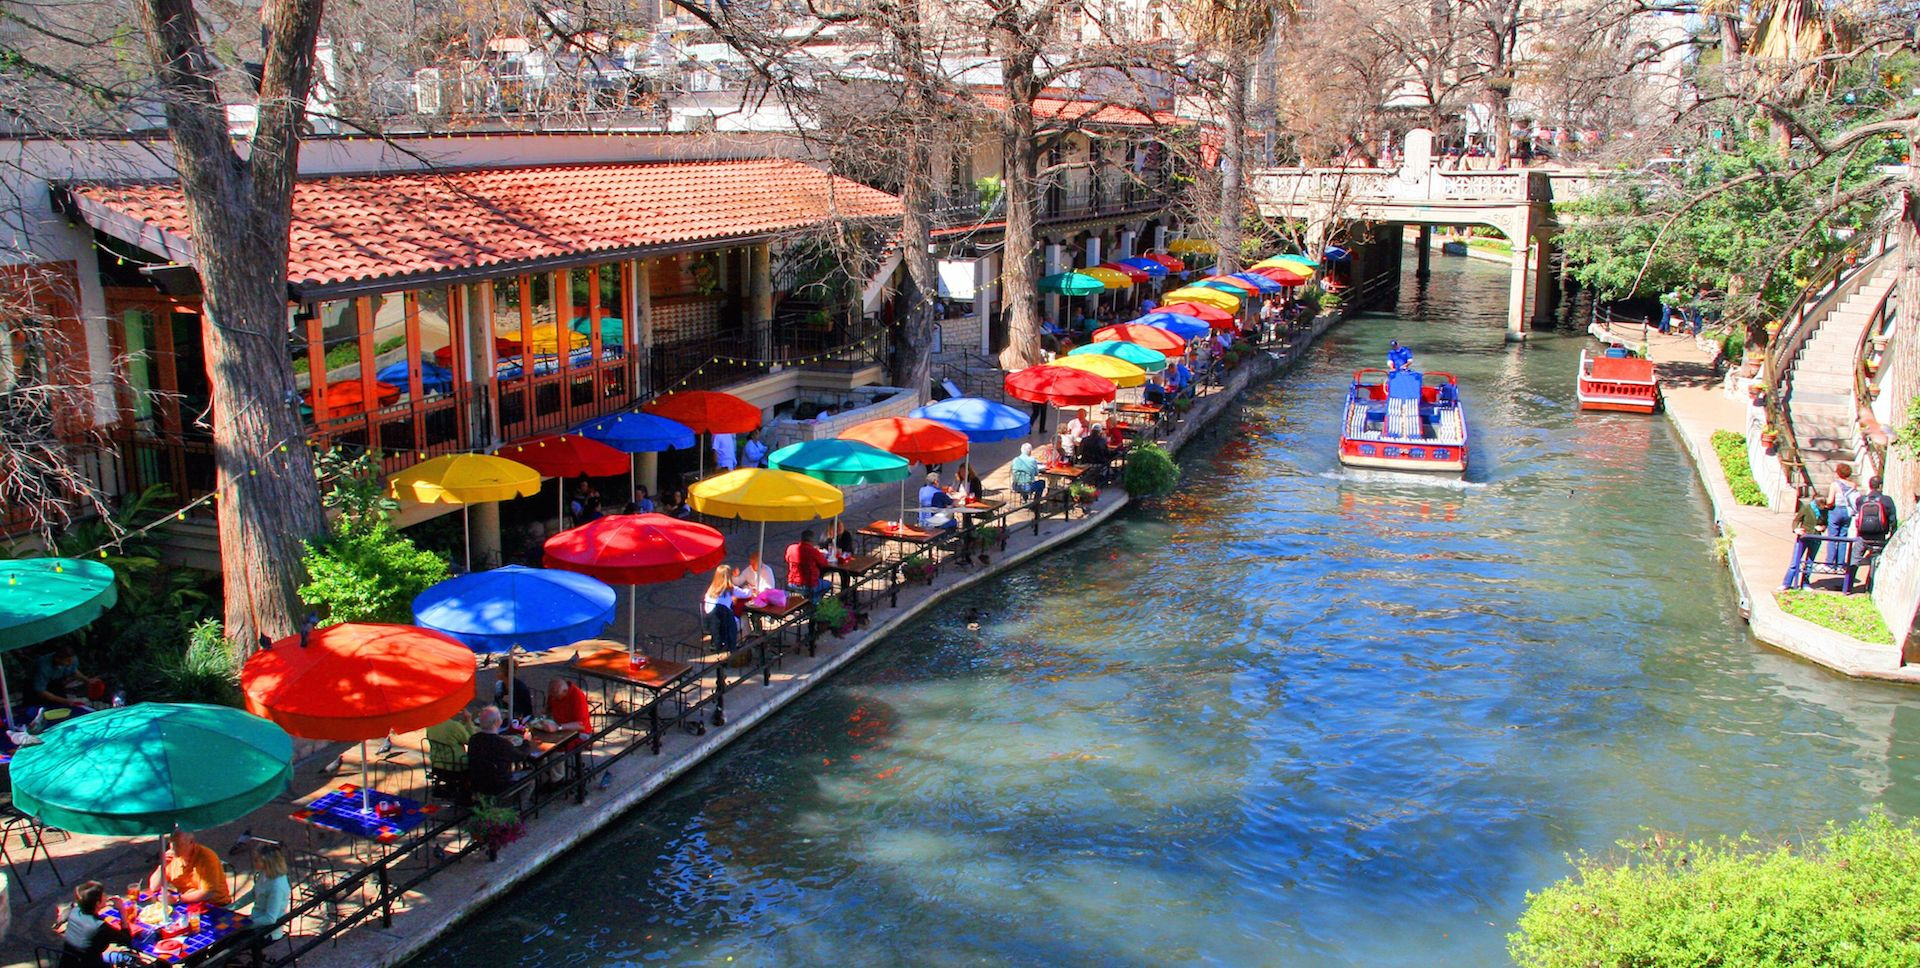 The San Antonio River Walk Also Known As Paseo Del Rio Or Simply As The River Walk Is A Cheap Places To Travel San Antonio Vacation San Antonio Travel Guide